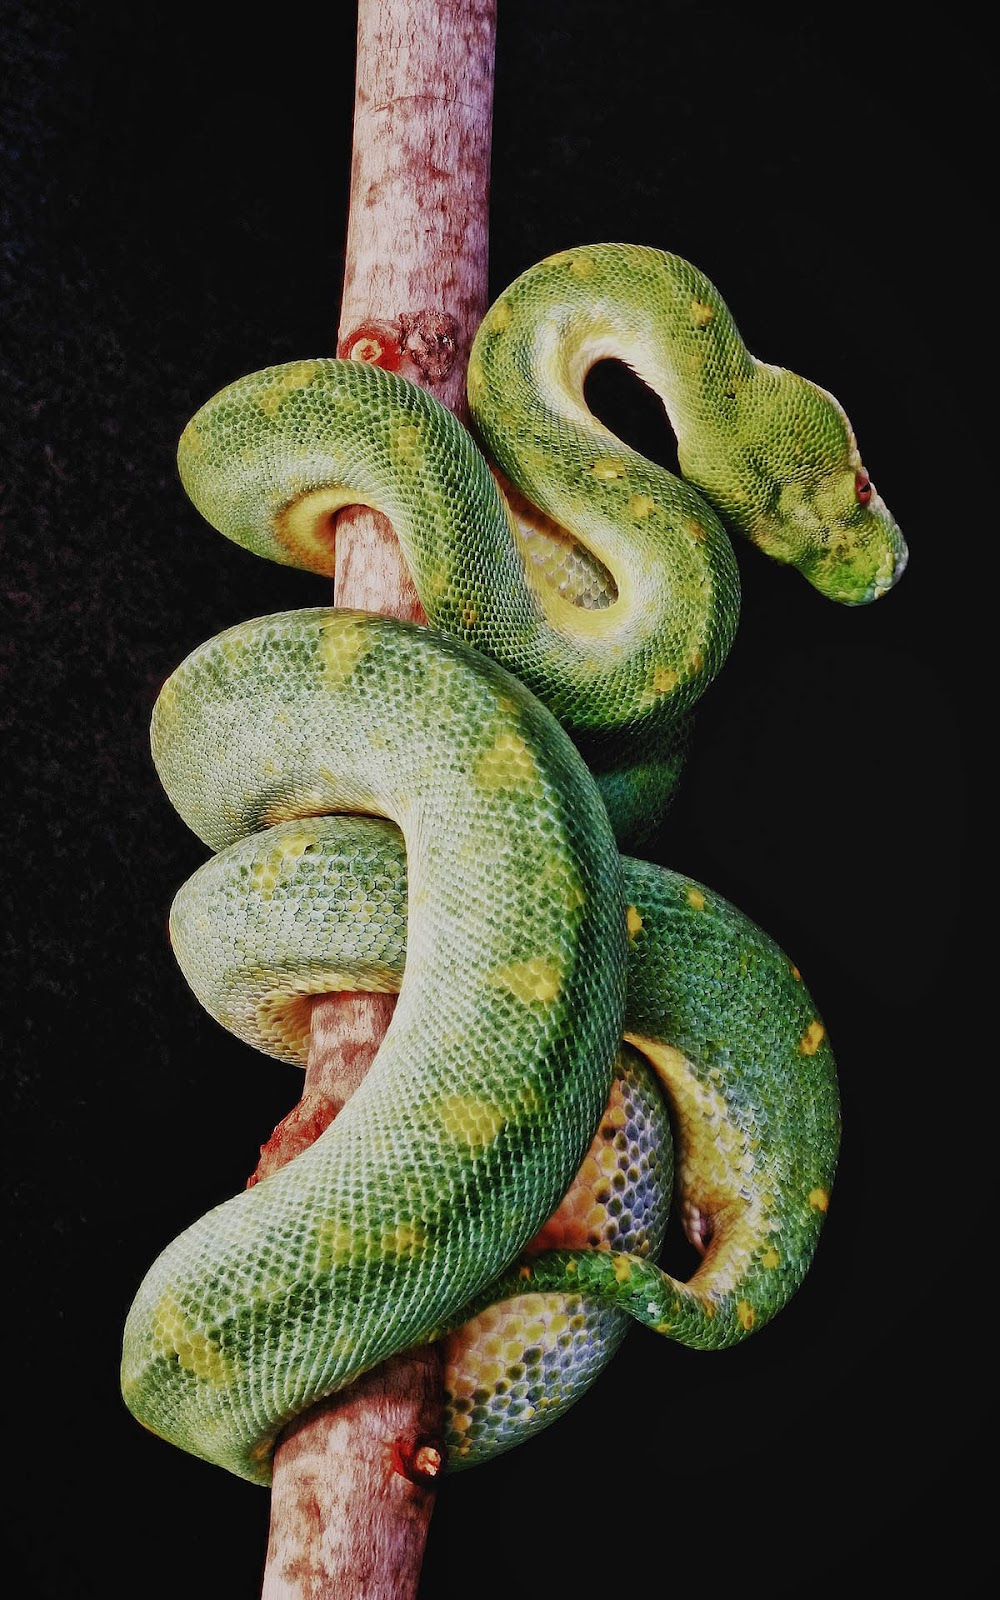 Hd images of snakes - Green snake hd wallpaper ...